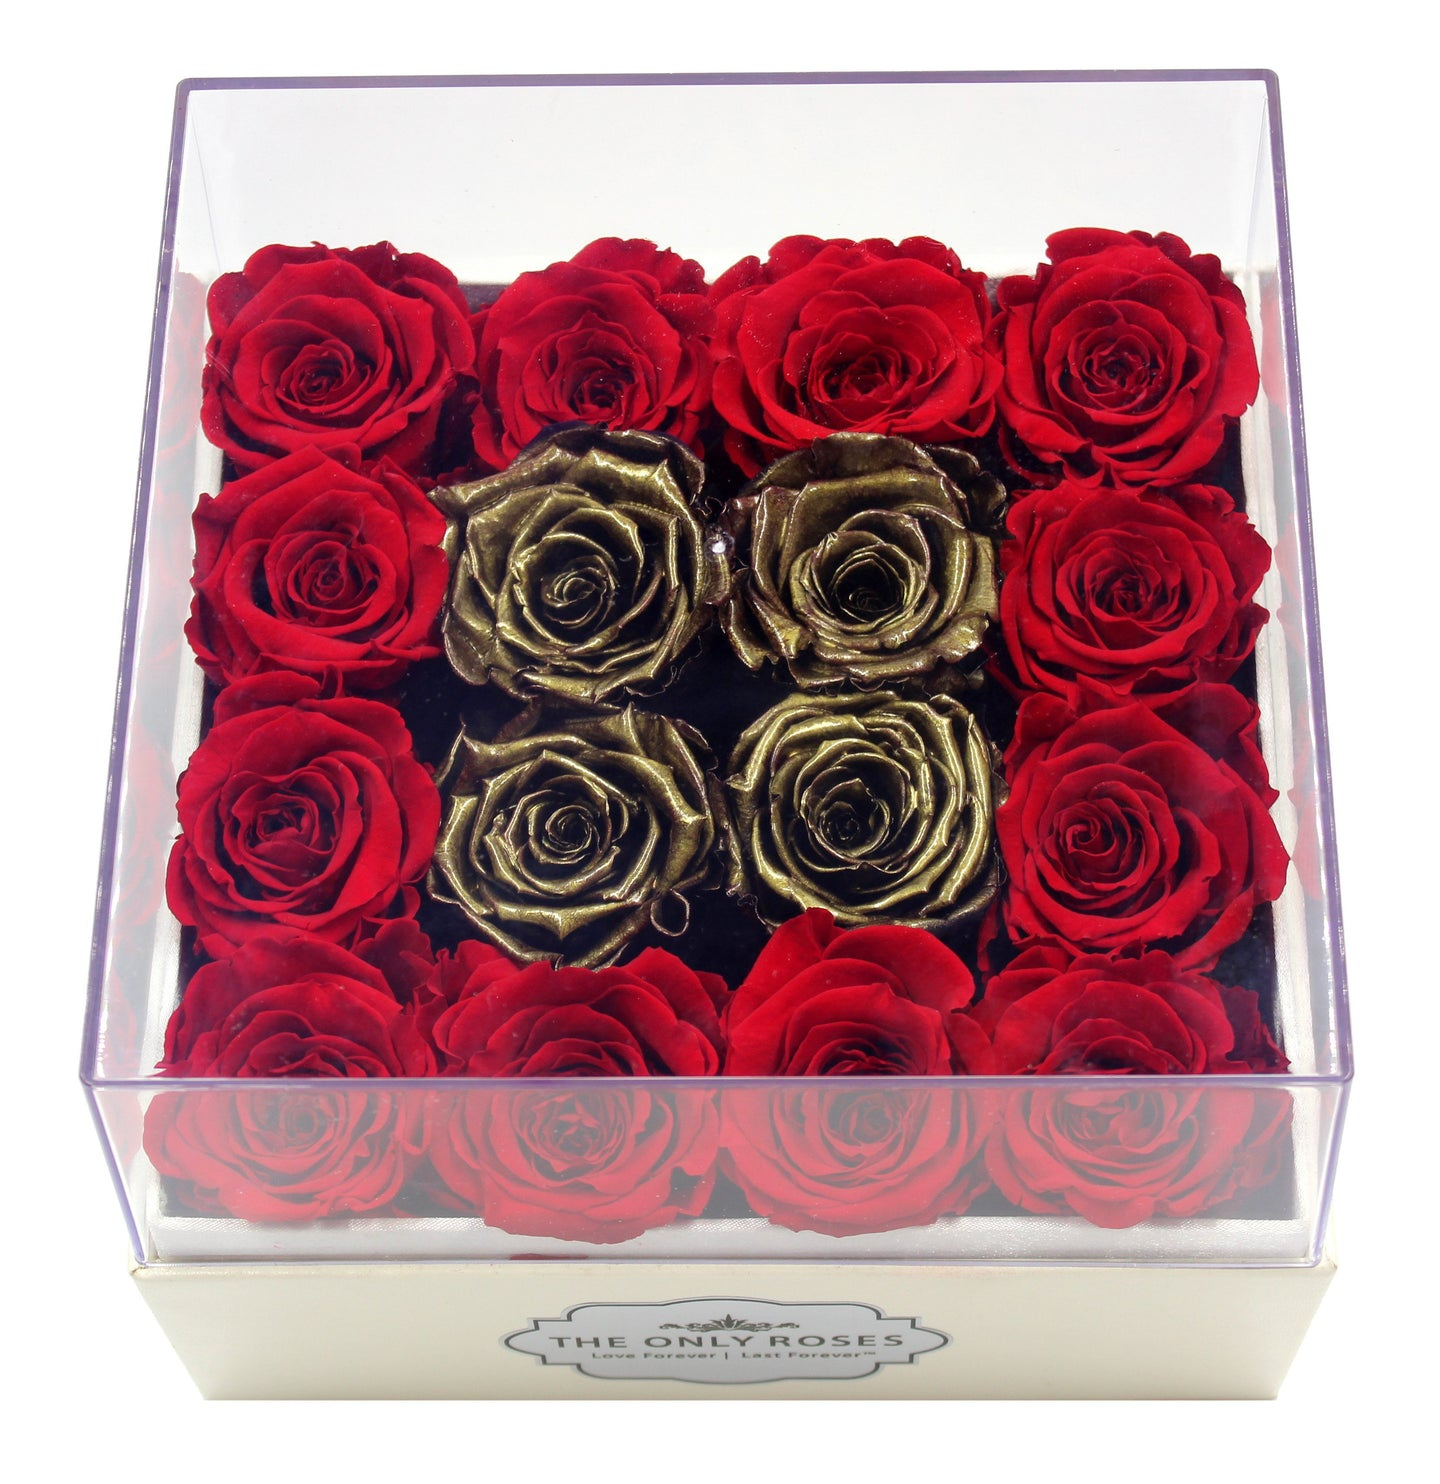 Special Edition Regular White Square Leather Box with Mixed Red and Gold Preserved Roses - The Only Roses